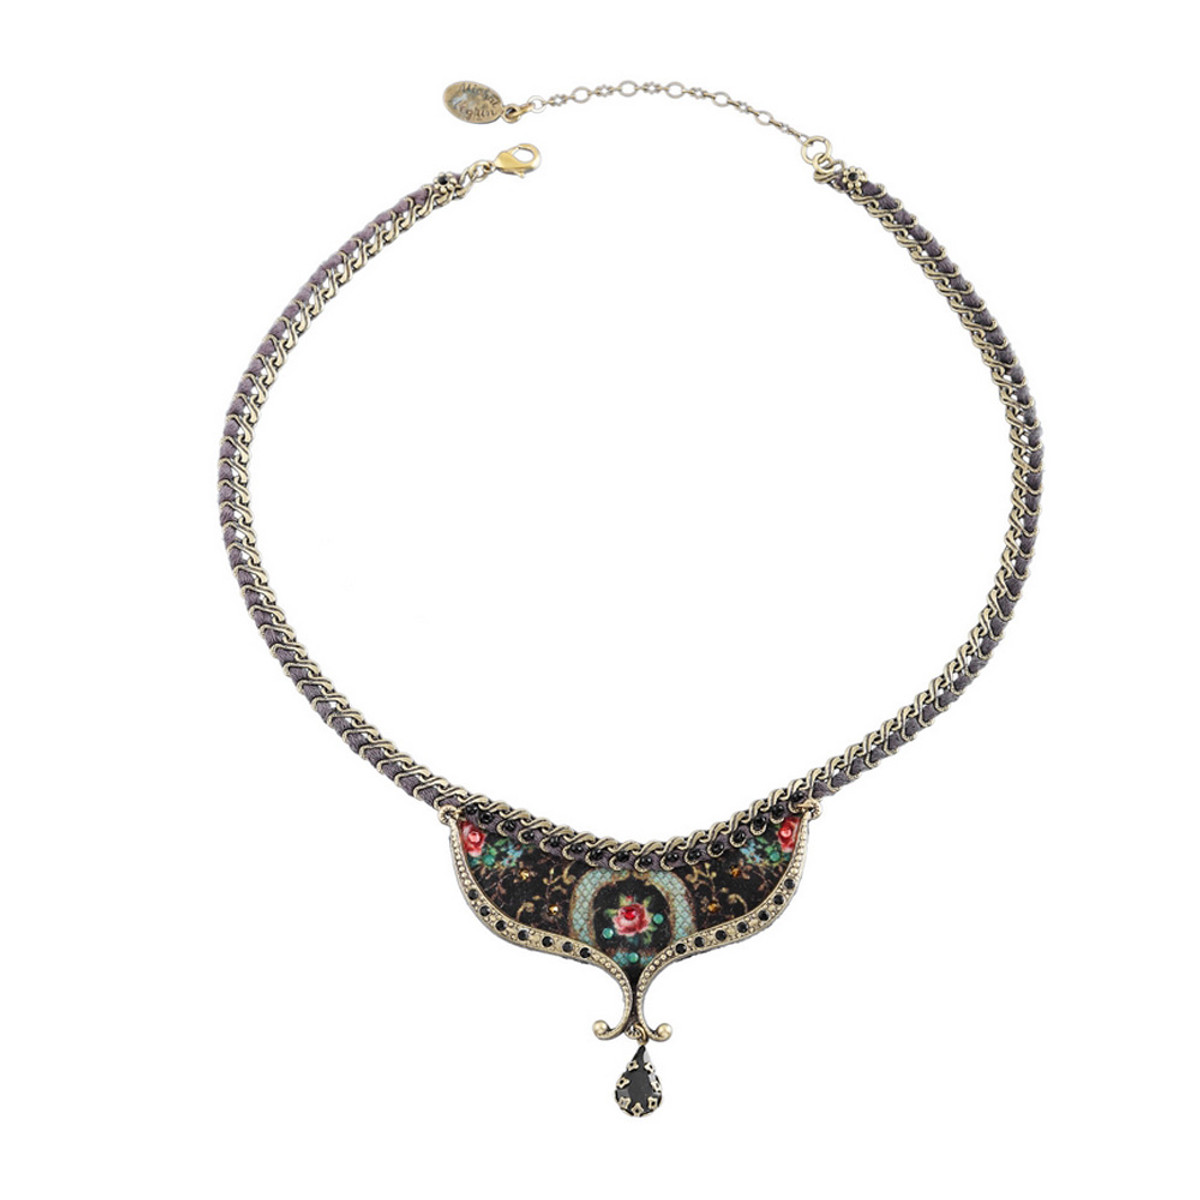 Michal Negrin Nataly Necklace